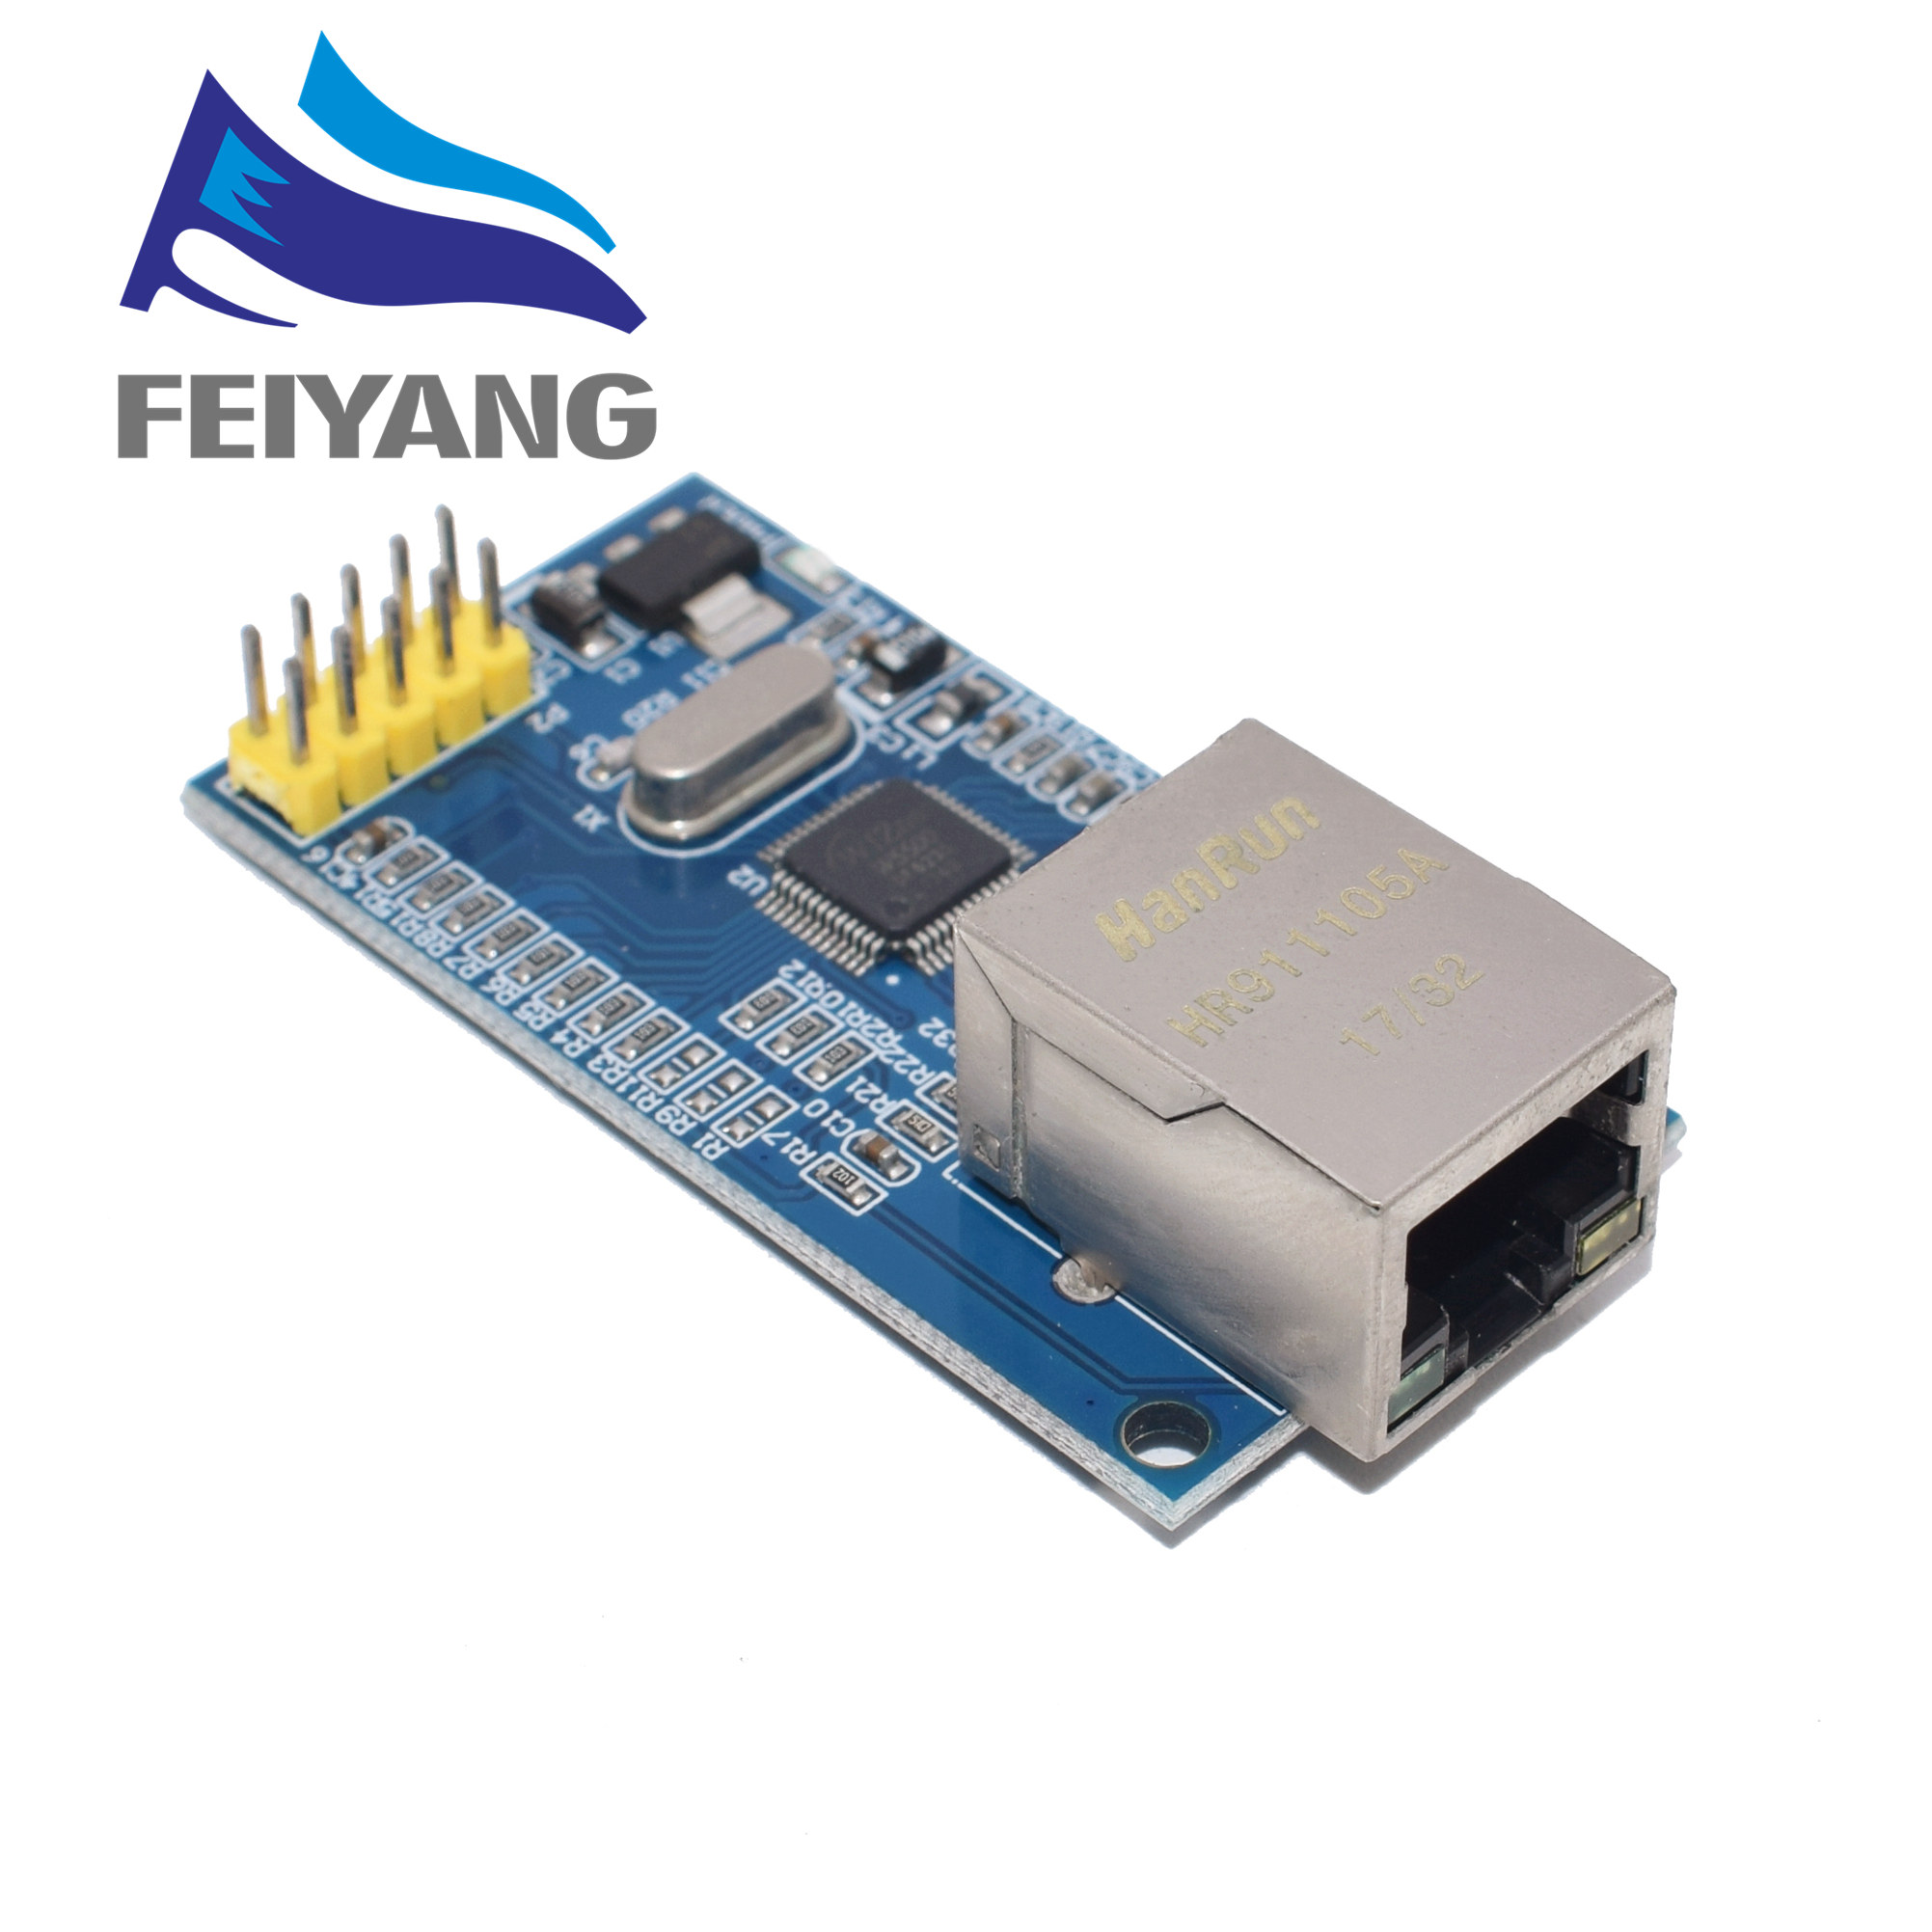 10pcs W5500 Ethernet network module hardware TCP / IP 51 / STM32 microcontroller program over W5100-in Integrated Circuits from Electronic Components & Supplies    1